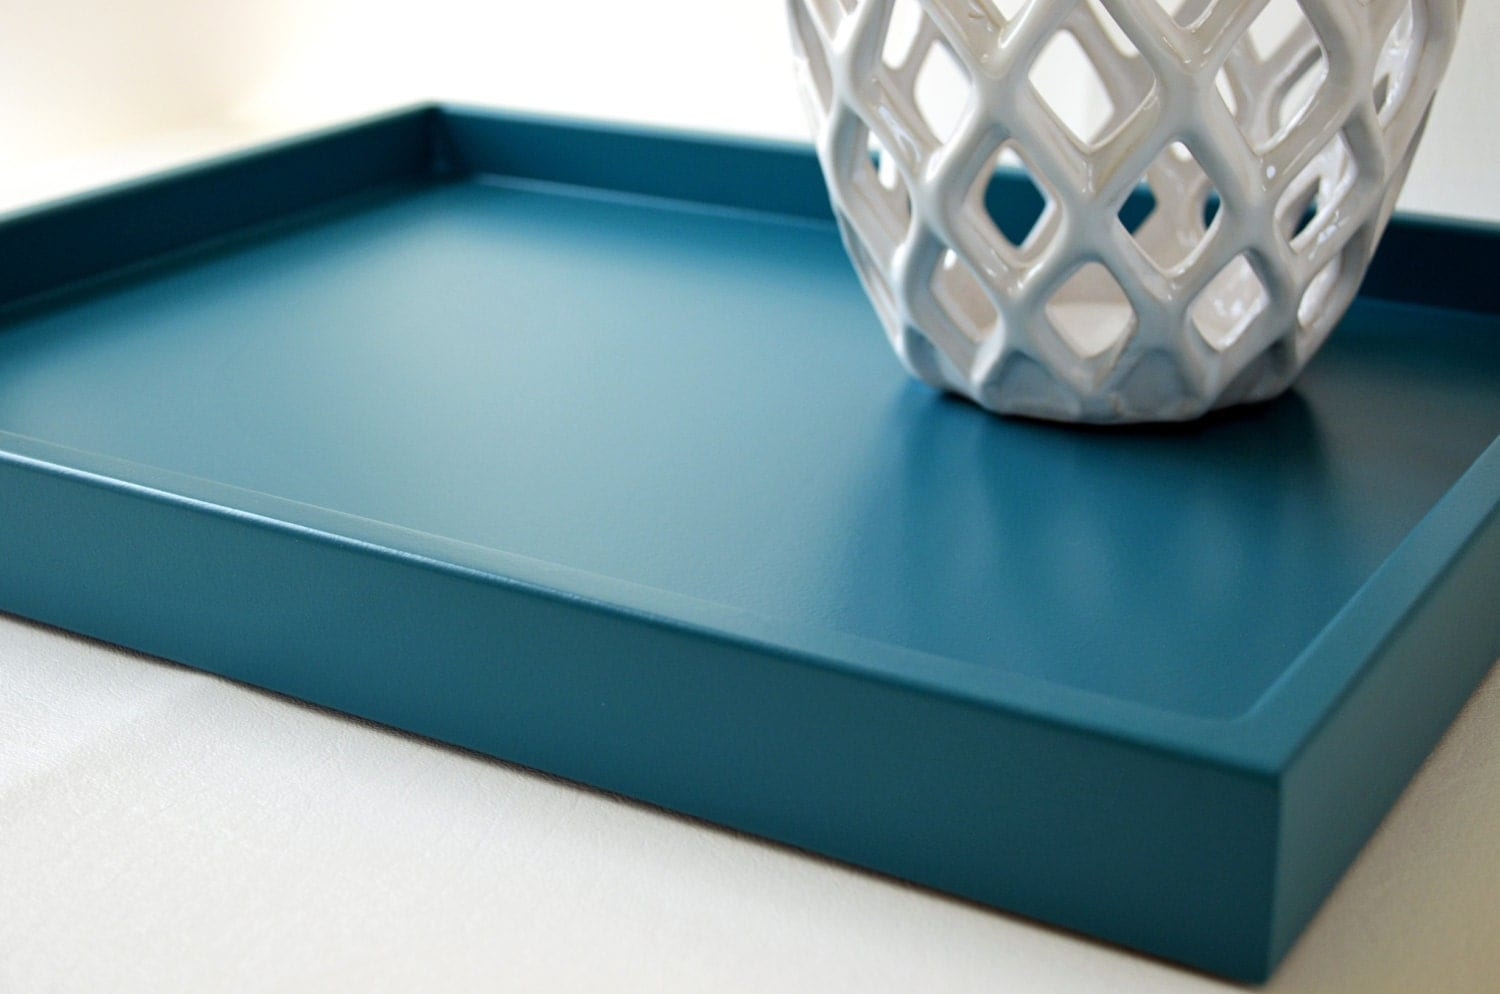 Teal blue 14 x 18 shallow wood decorative tray coffee table Decorative trays for coffee tables